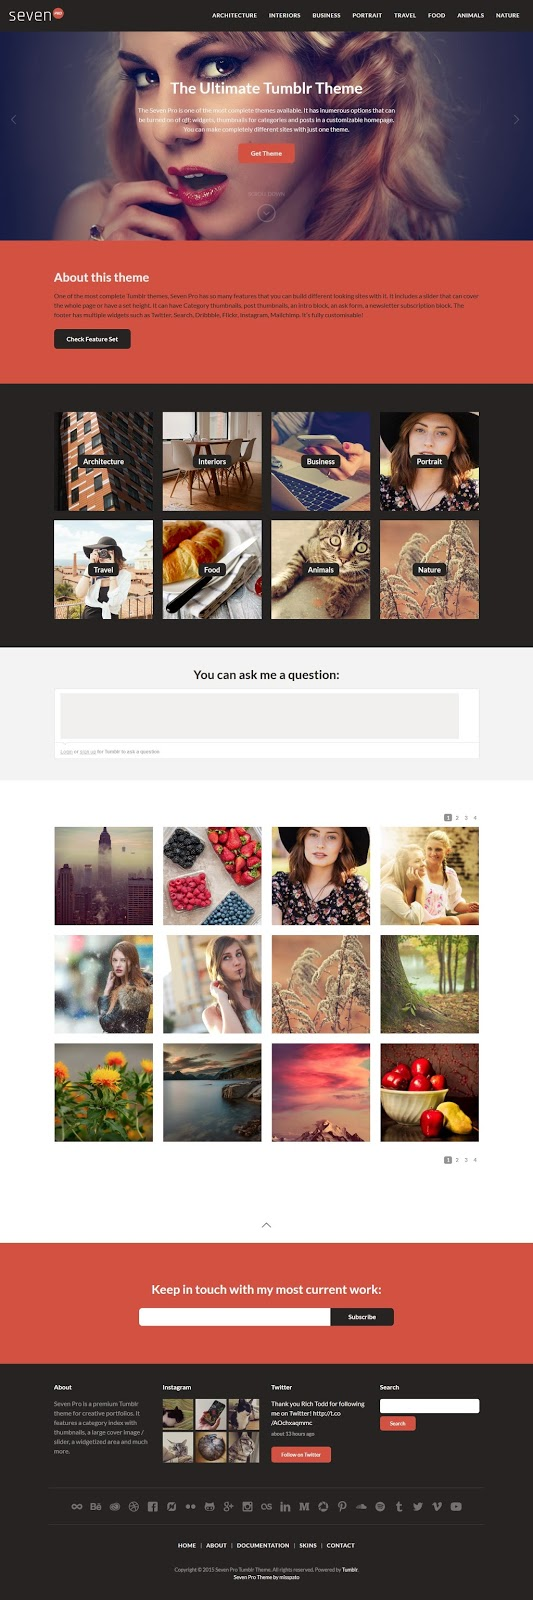 Best Premium Tumblr Theme 2015